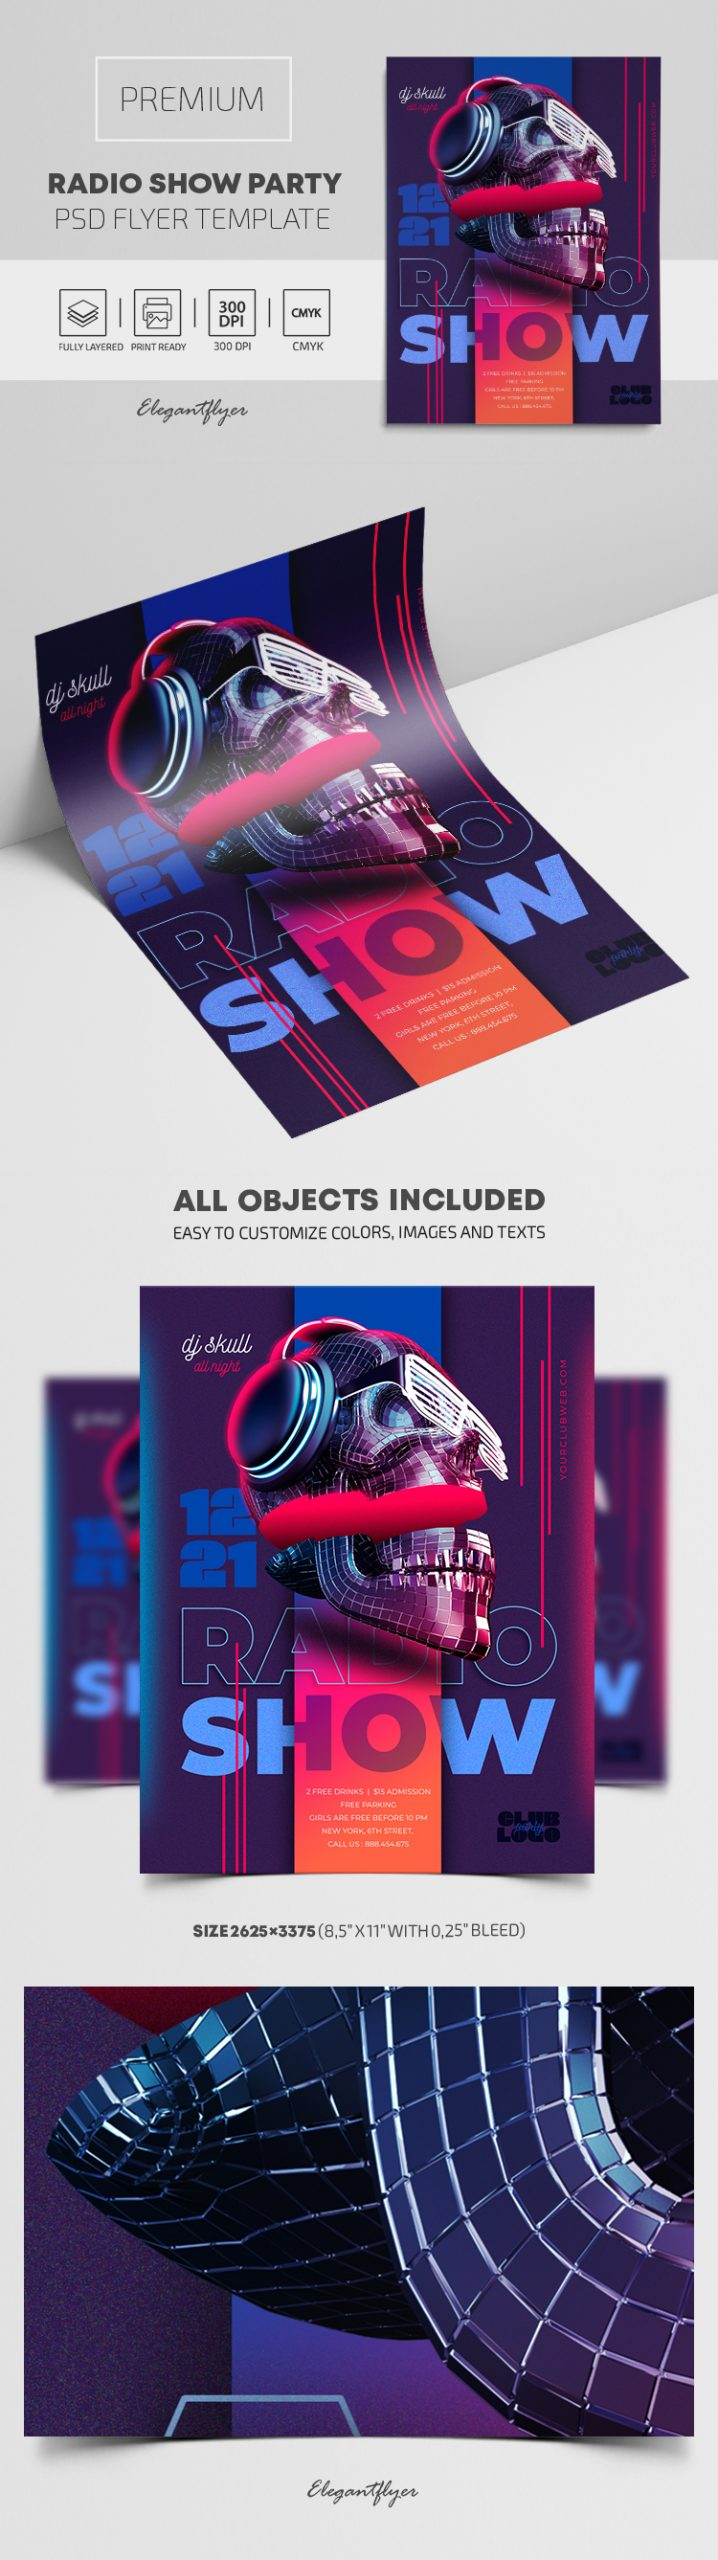 Radio Show Party – Premium PSD Flyer Template